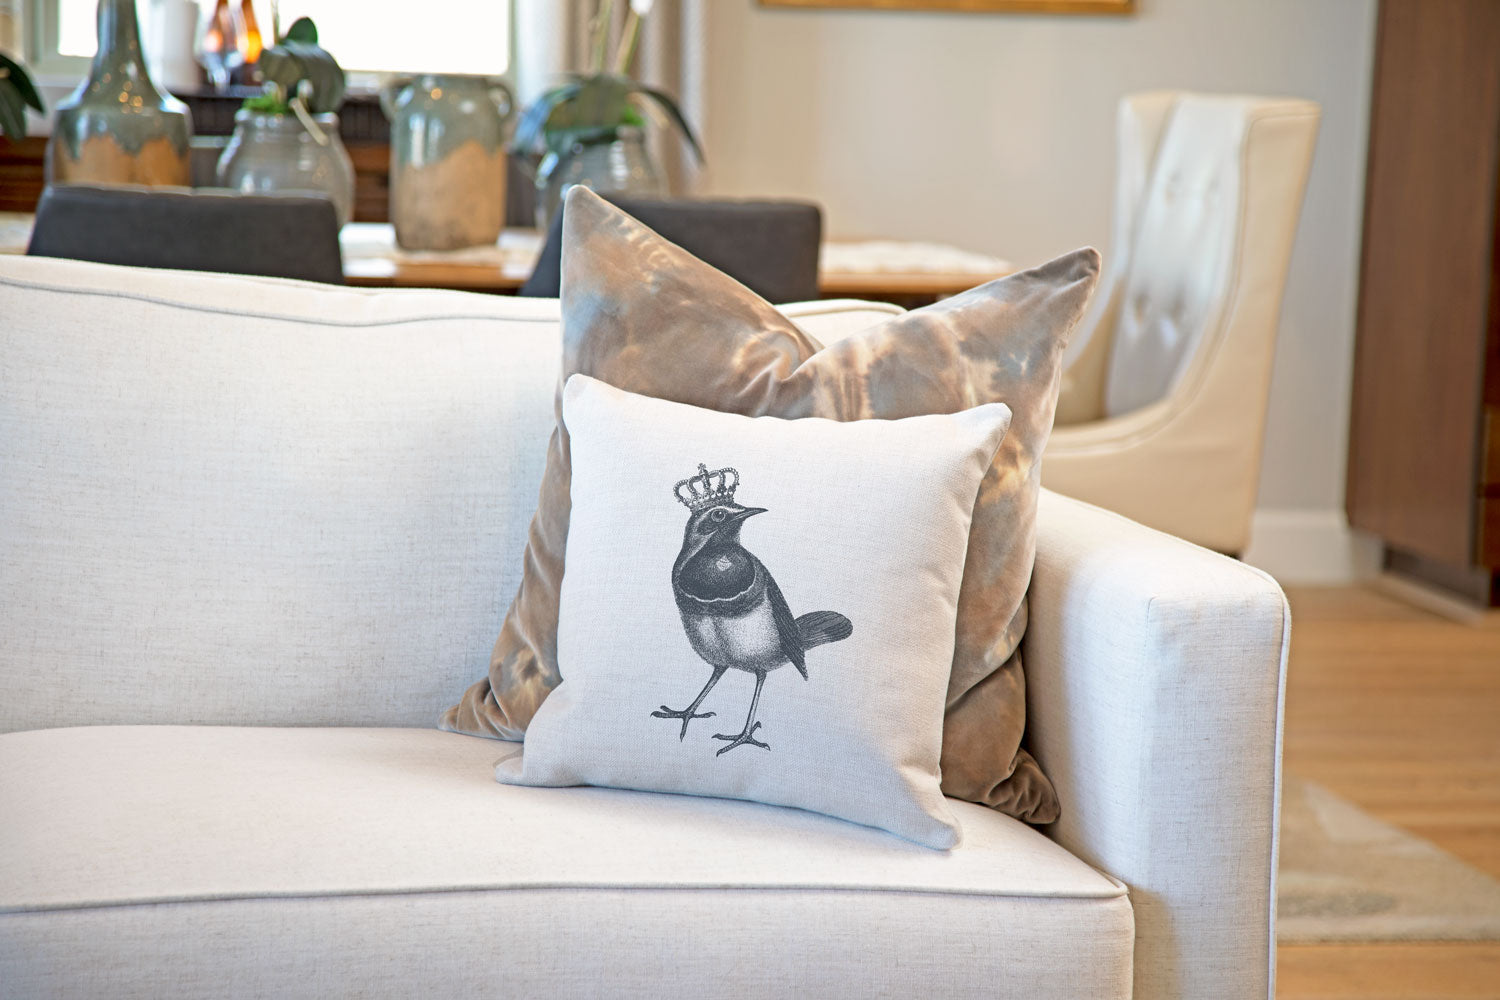 The Royal Robin Throw Pillow Cover - Animal Illustrations Throw Pillow Cover Collection-Di Lewis